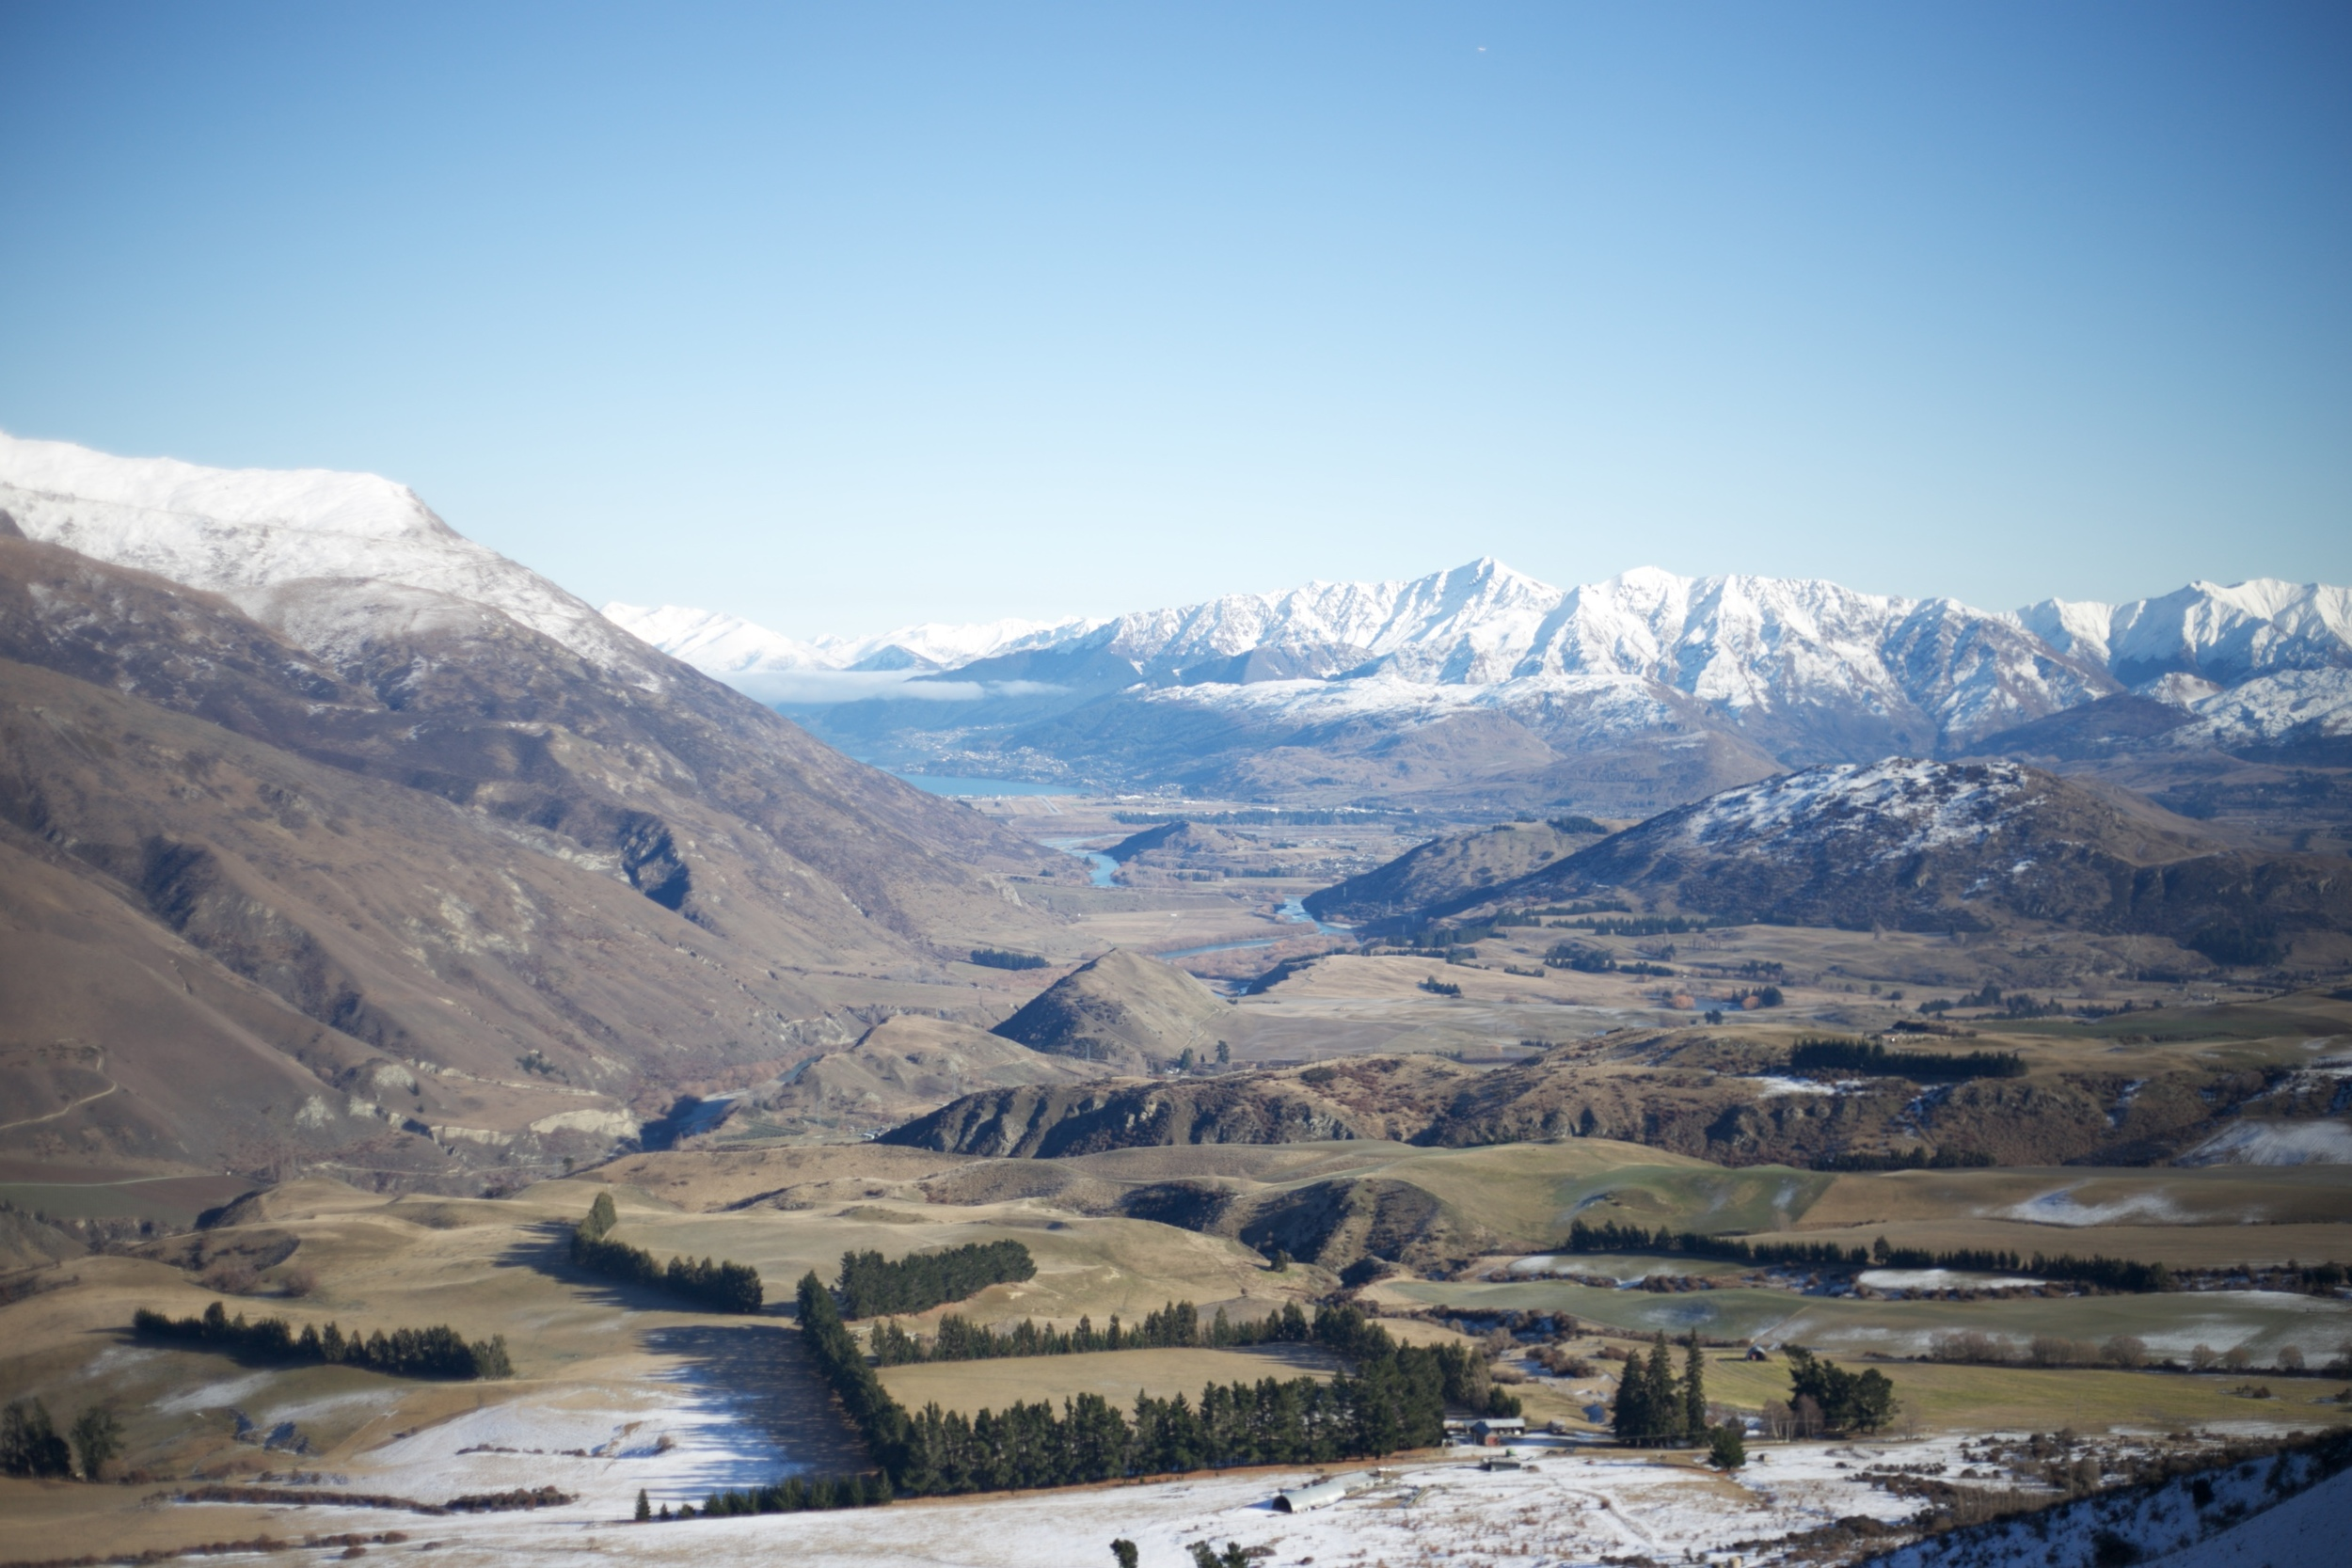 Looking out over the Crown Range - New Zealand looks like the true Middle Earth